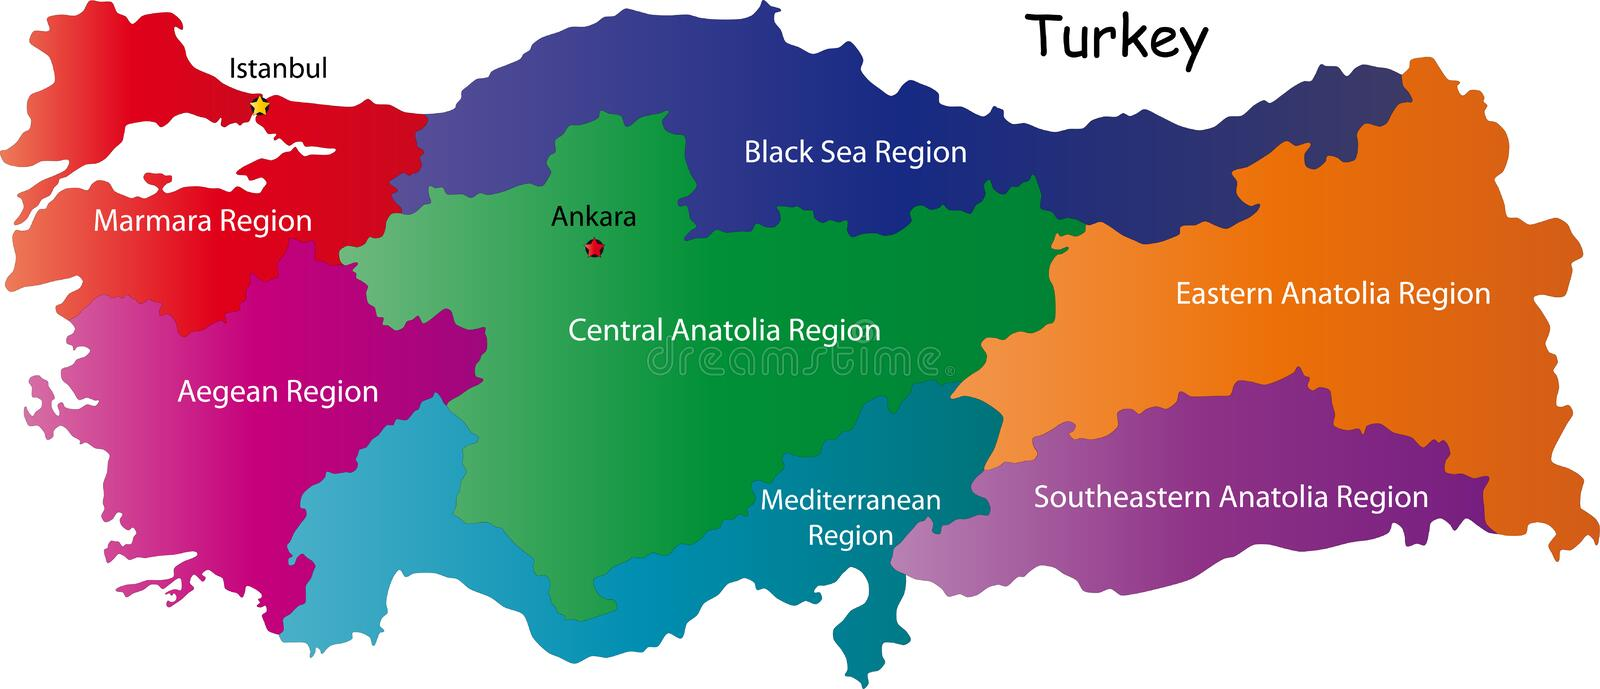 Turkey. Map designed in illustration with regions colored in bright colors. Vector illustration royalty free illustration